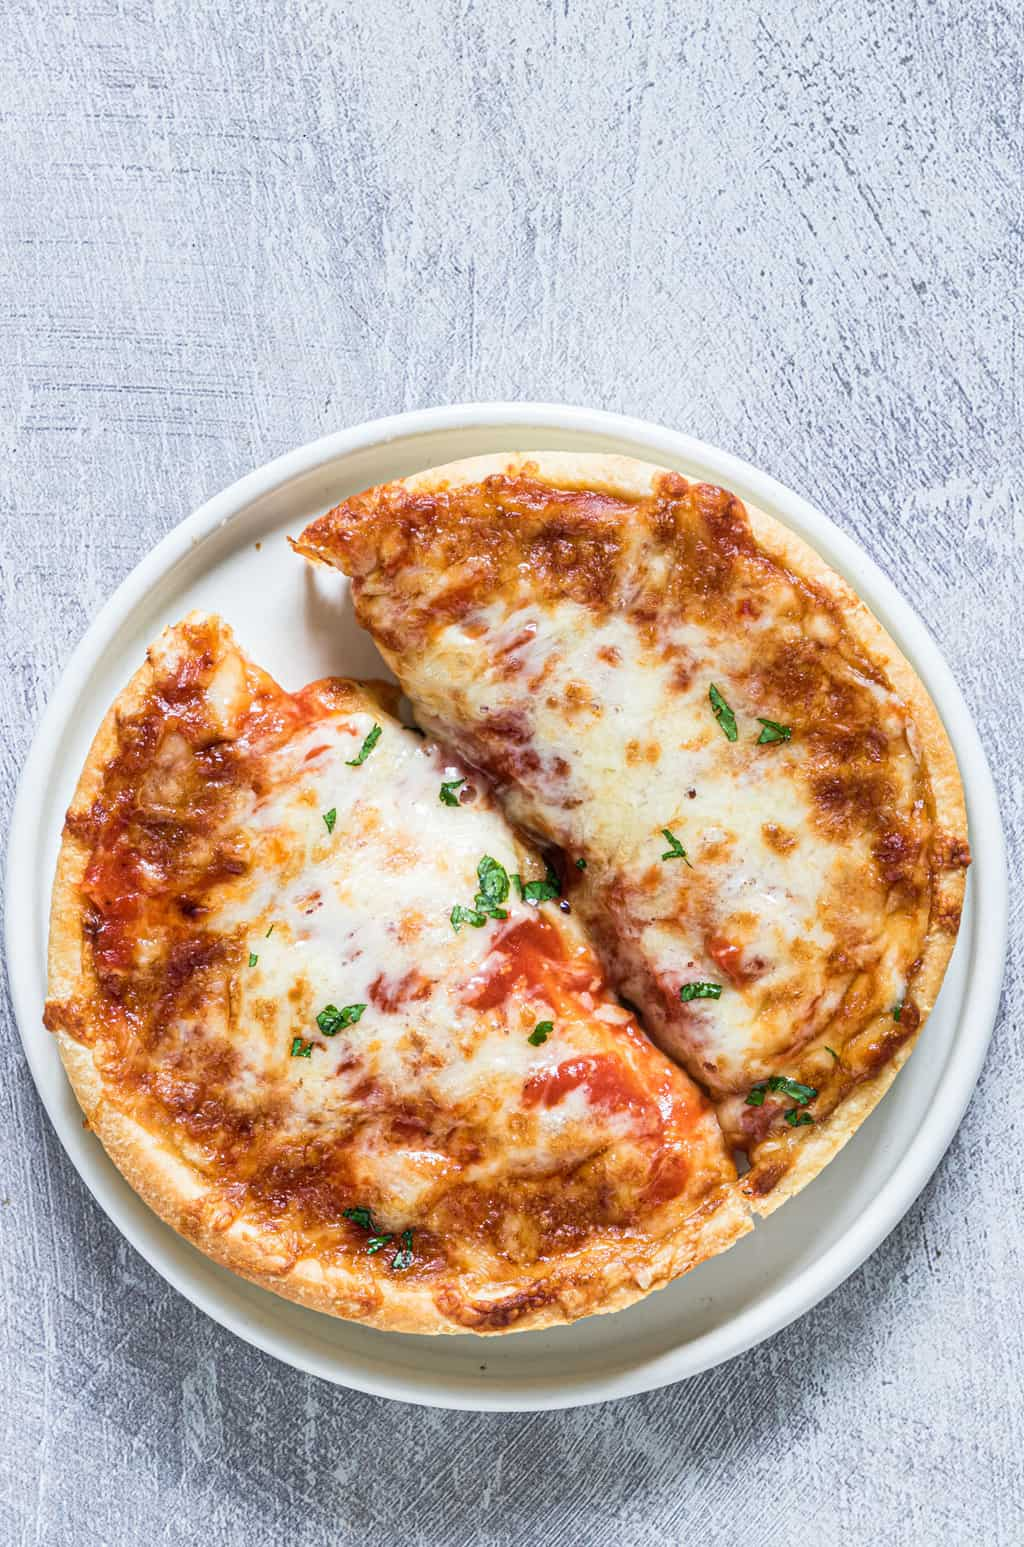 Air Fryer frozen pizza that has been cooked in an air fryer ready to serve